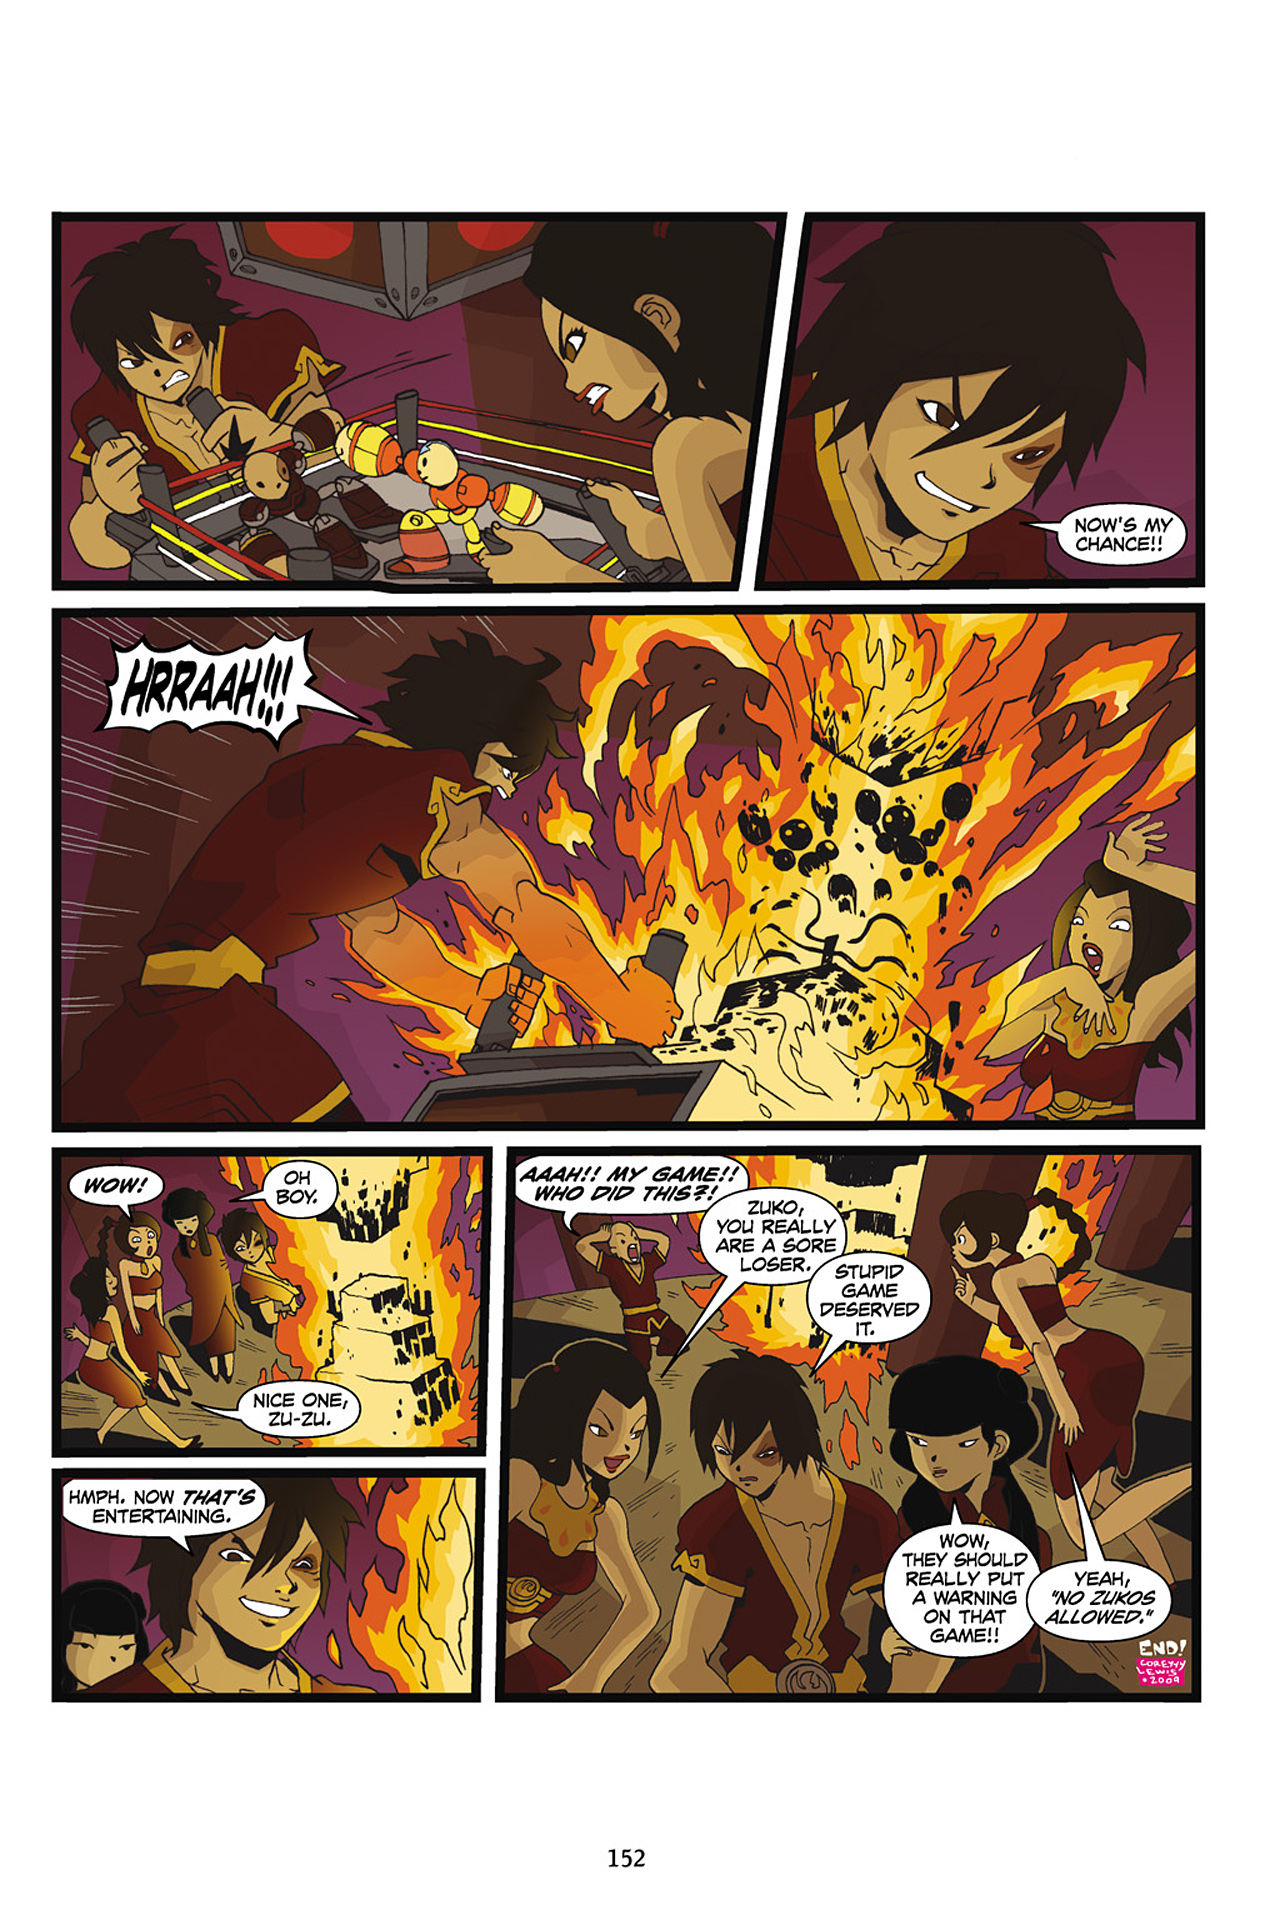 Nickelodeon Avatar: The Last Airbender - The Lost Adventures chap full pic 153